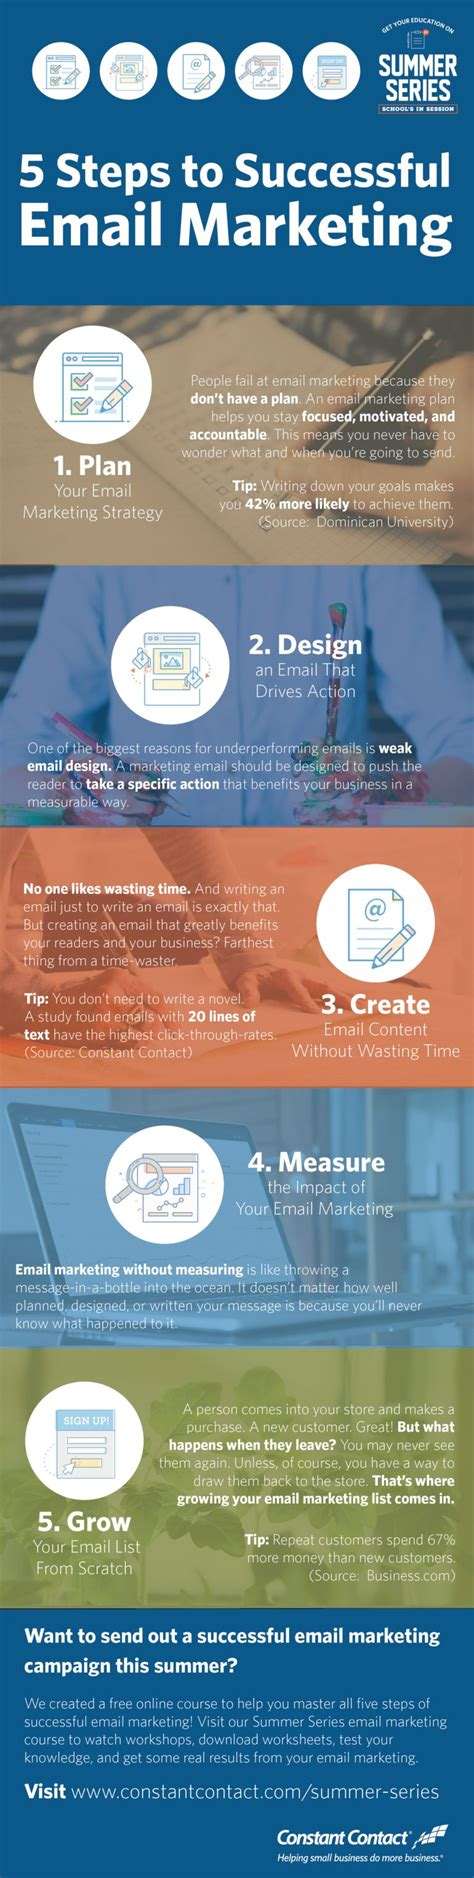 Email Marketing 1 by 5 Steps To A Successful Email Marketing Caign Infographic